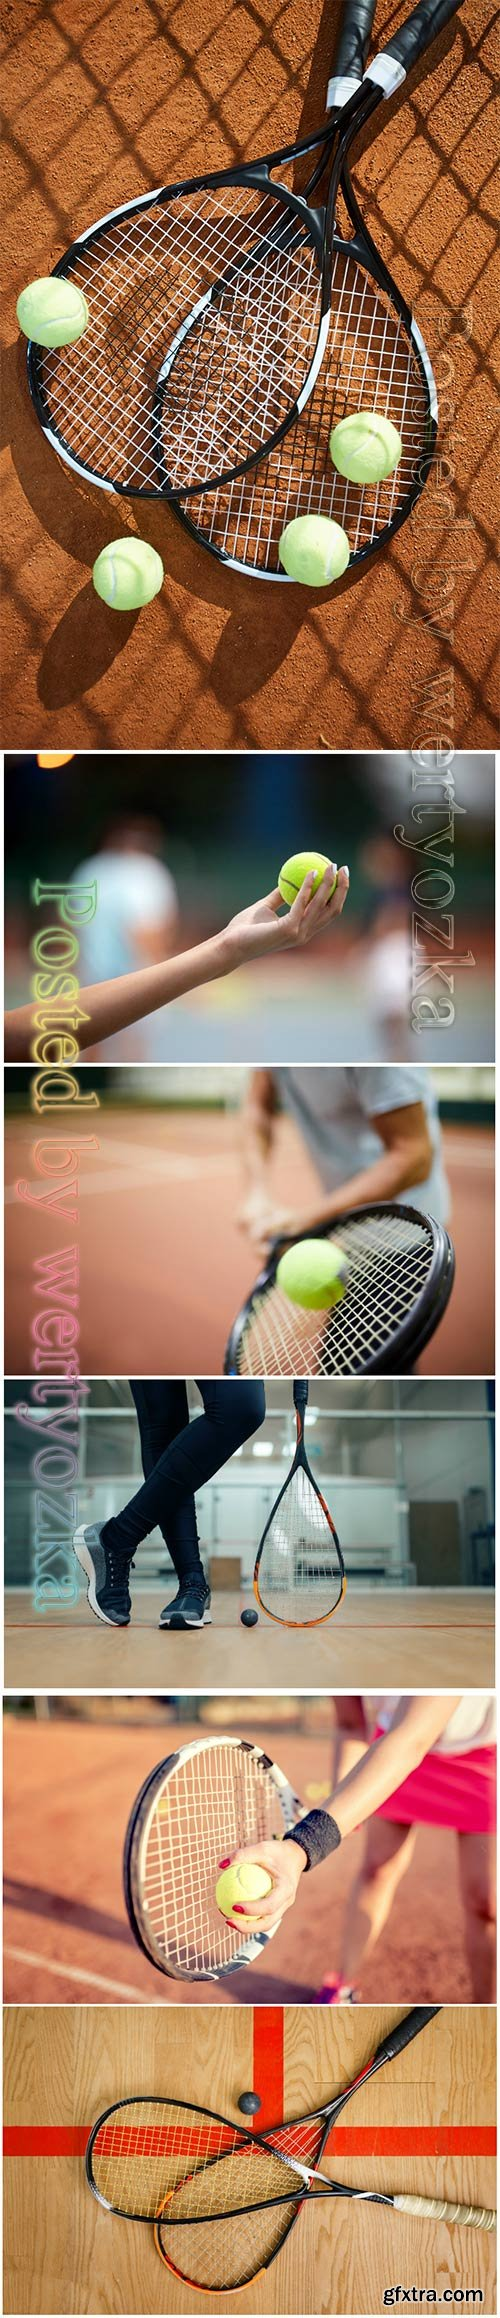 Tennis beautiful stock photo